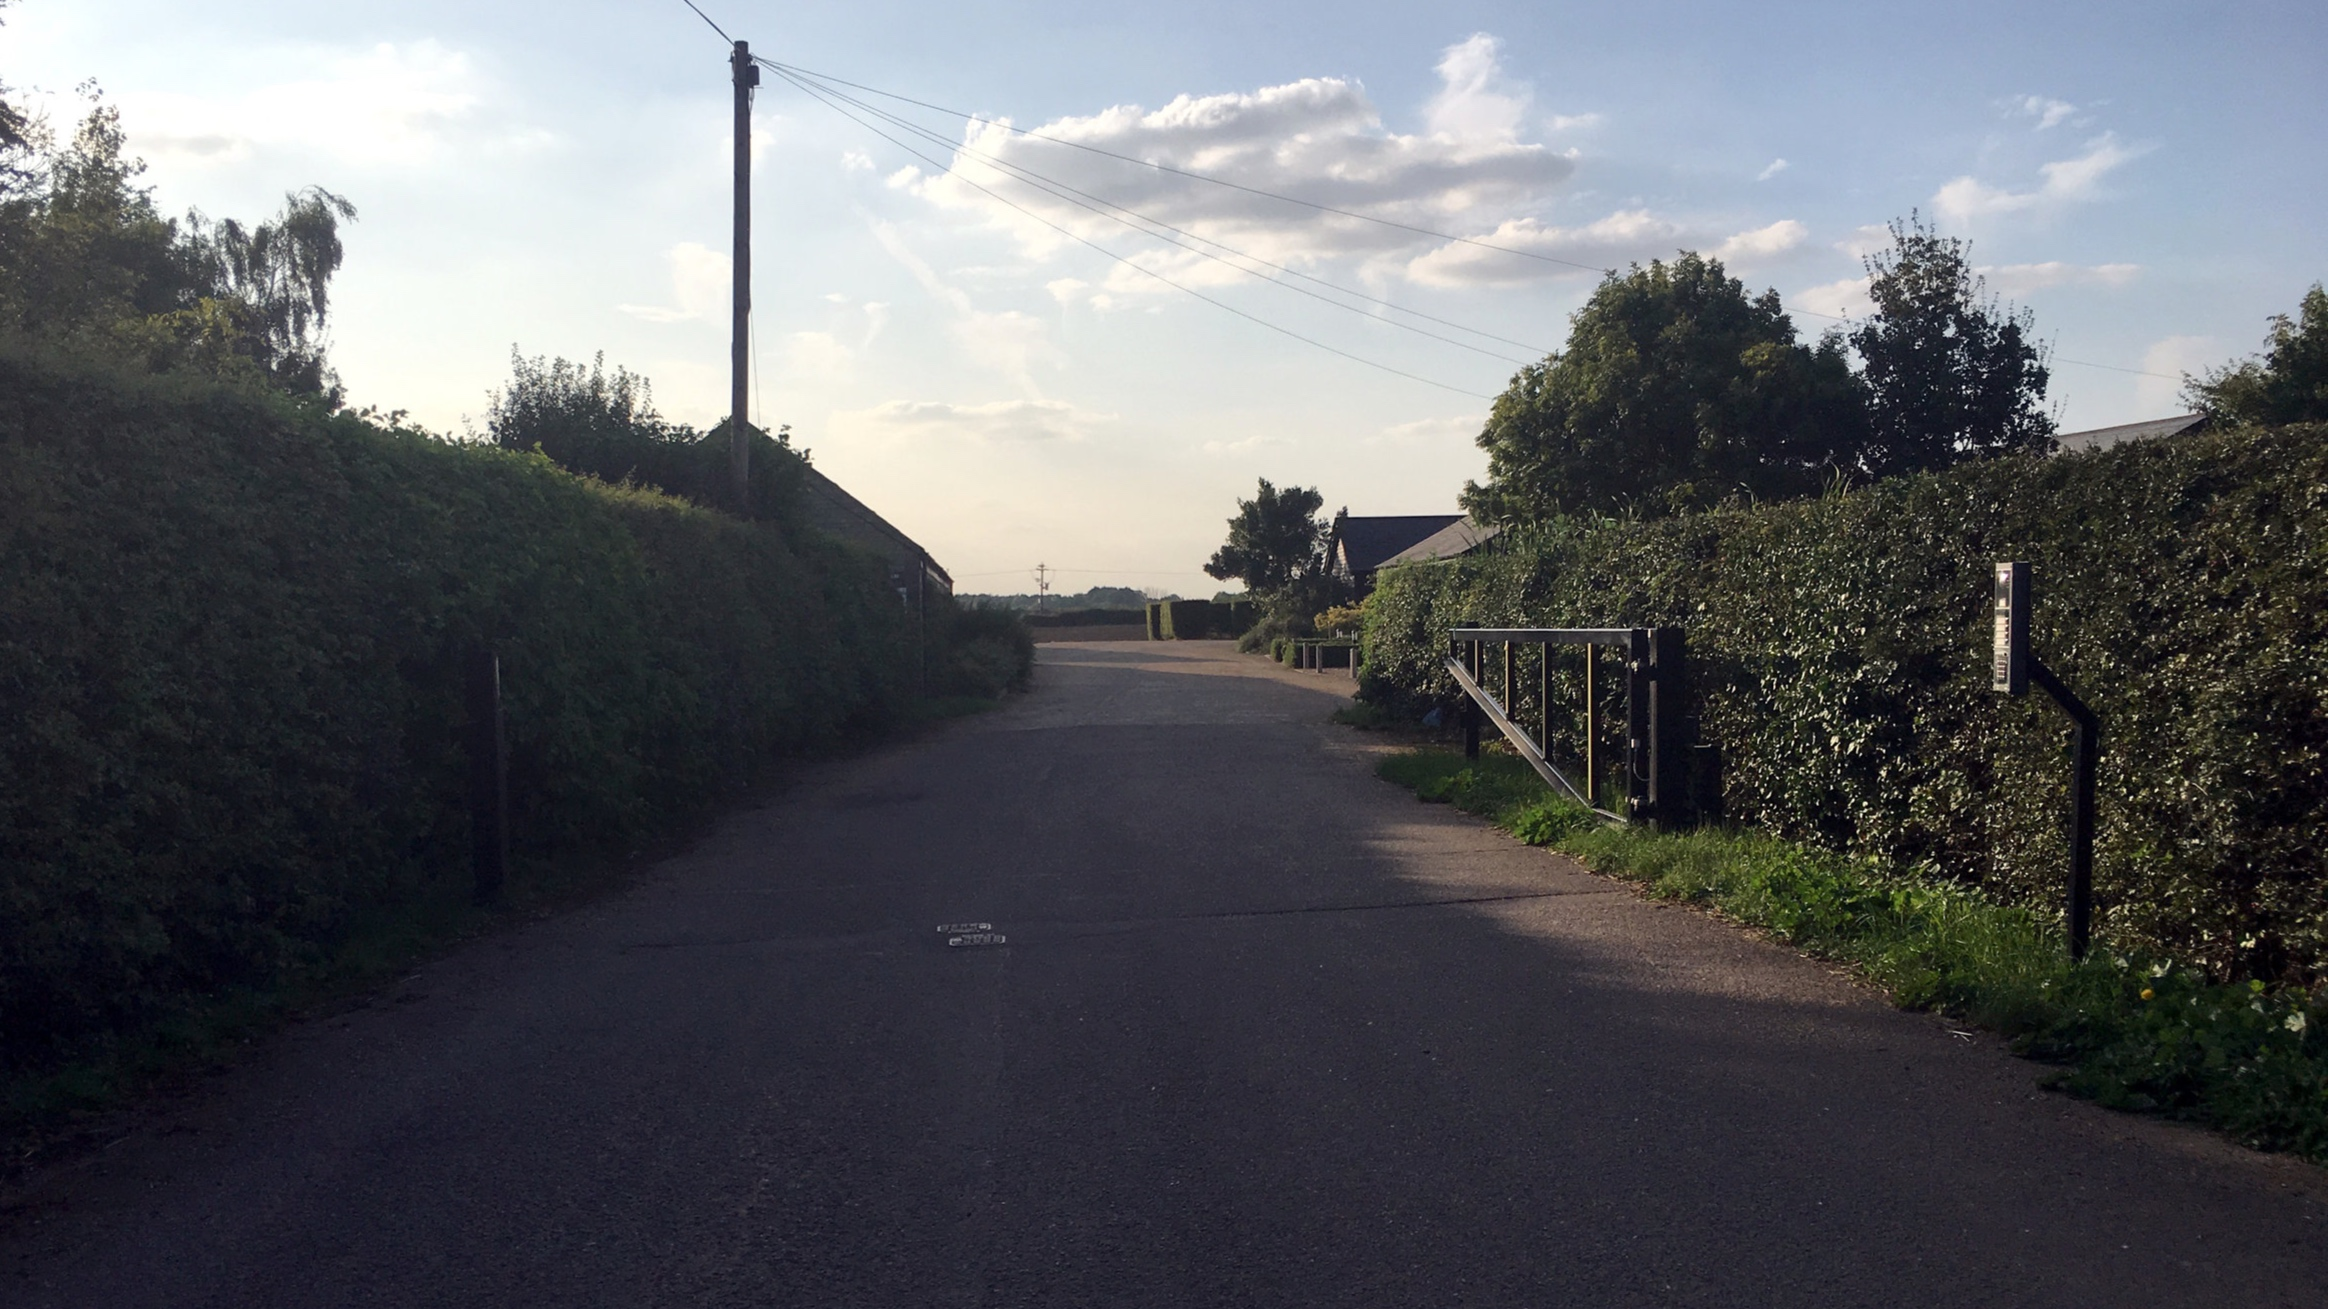 Turn right after the hedge/before the first building